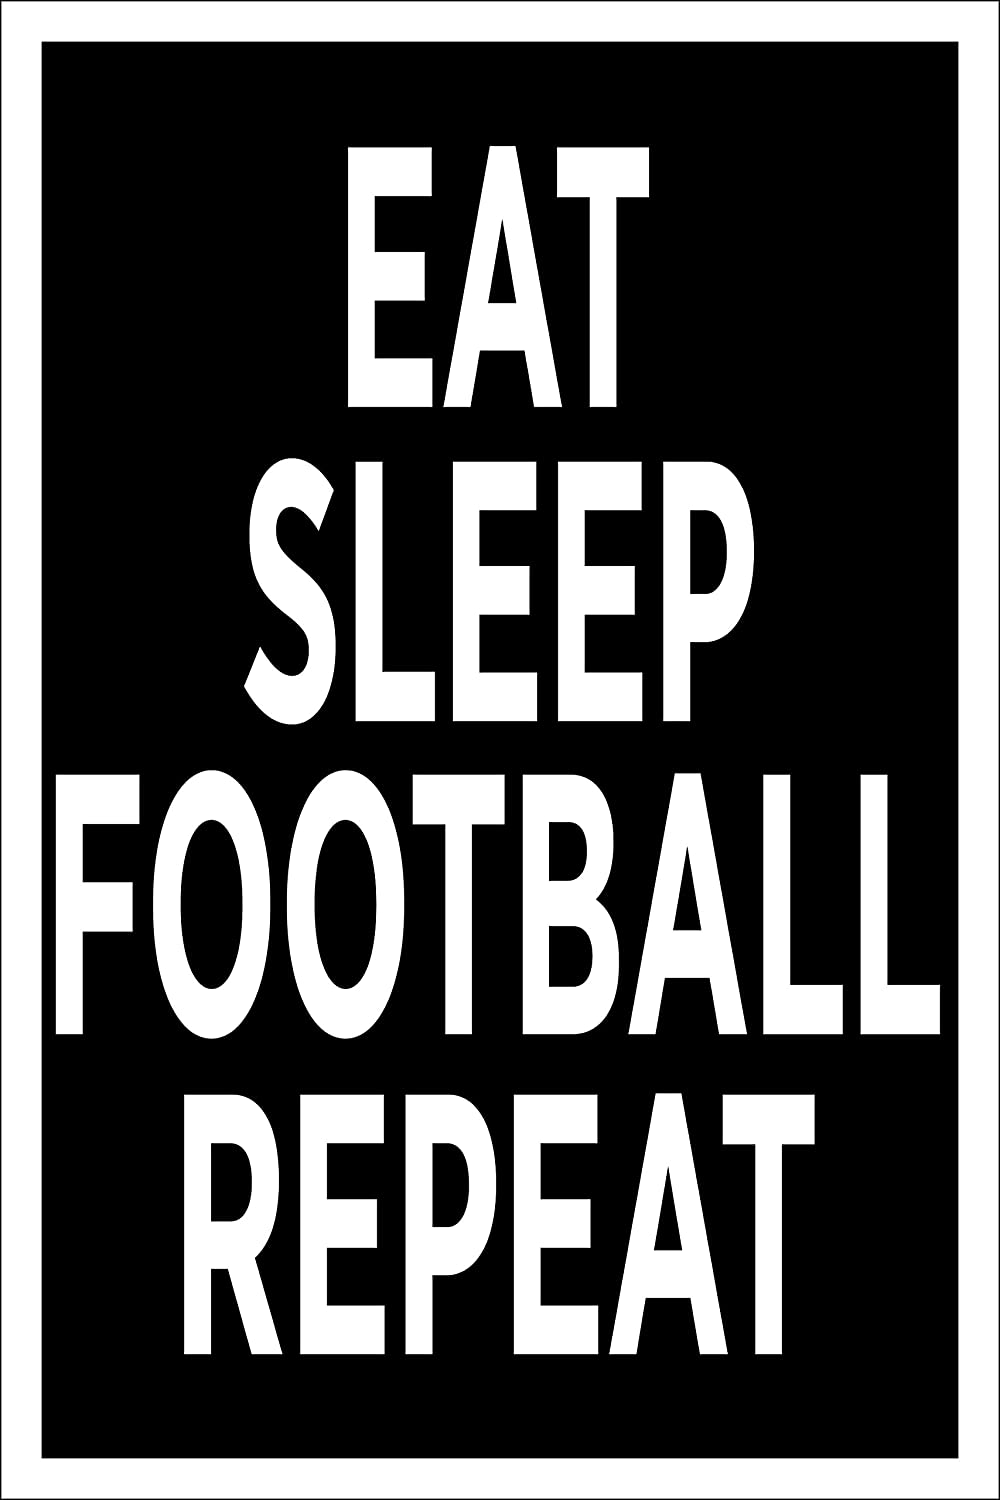 Spitzy's Eat Sleep Football Repeat 12 by 18 Inch, Home Bedroom, Office, Garage, Man Cave, Printed Wall Art Decoration